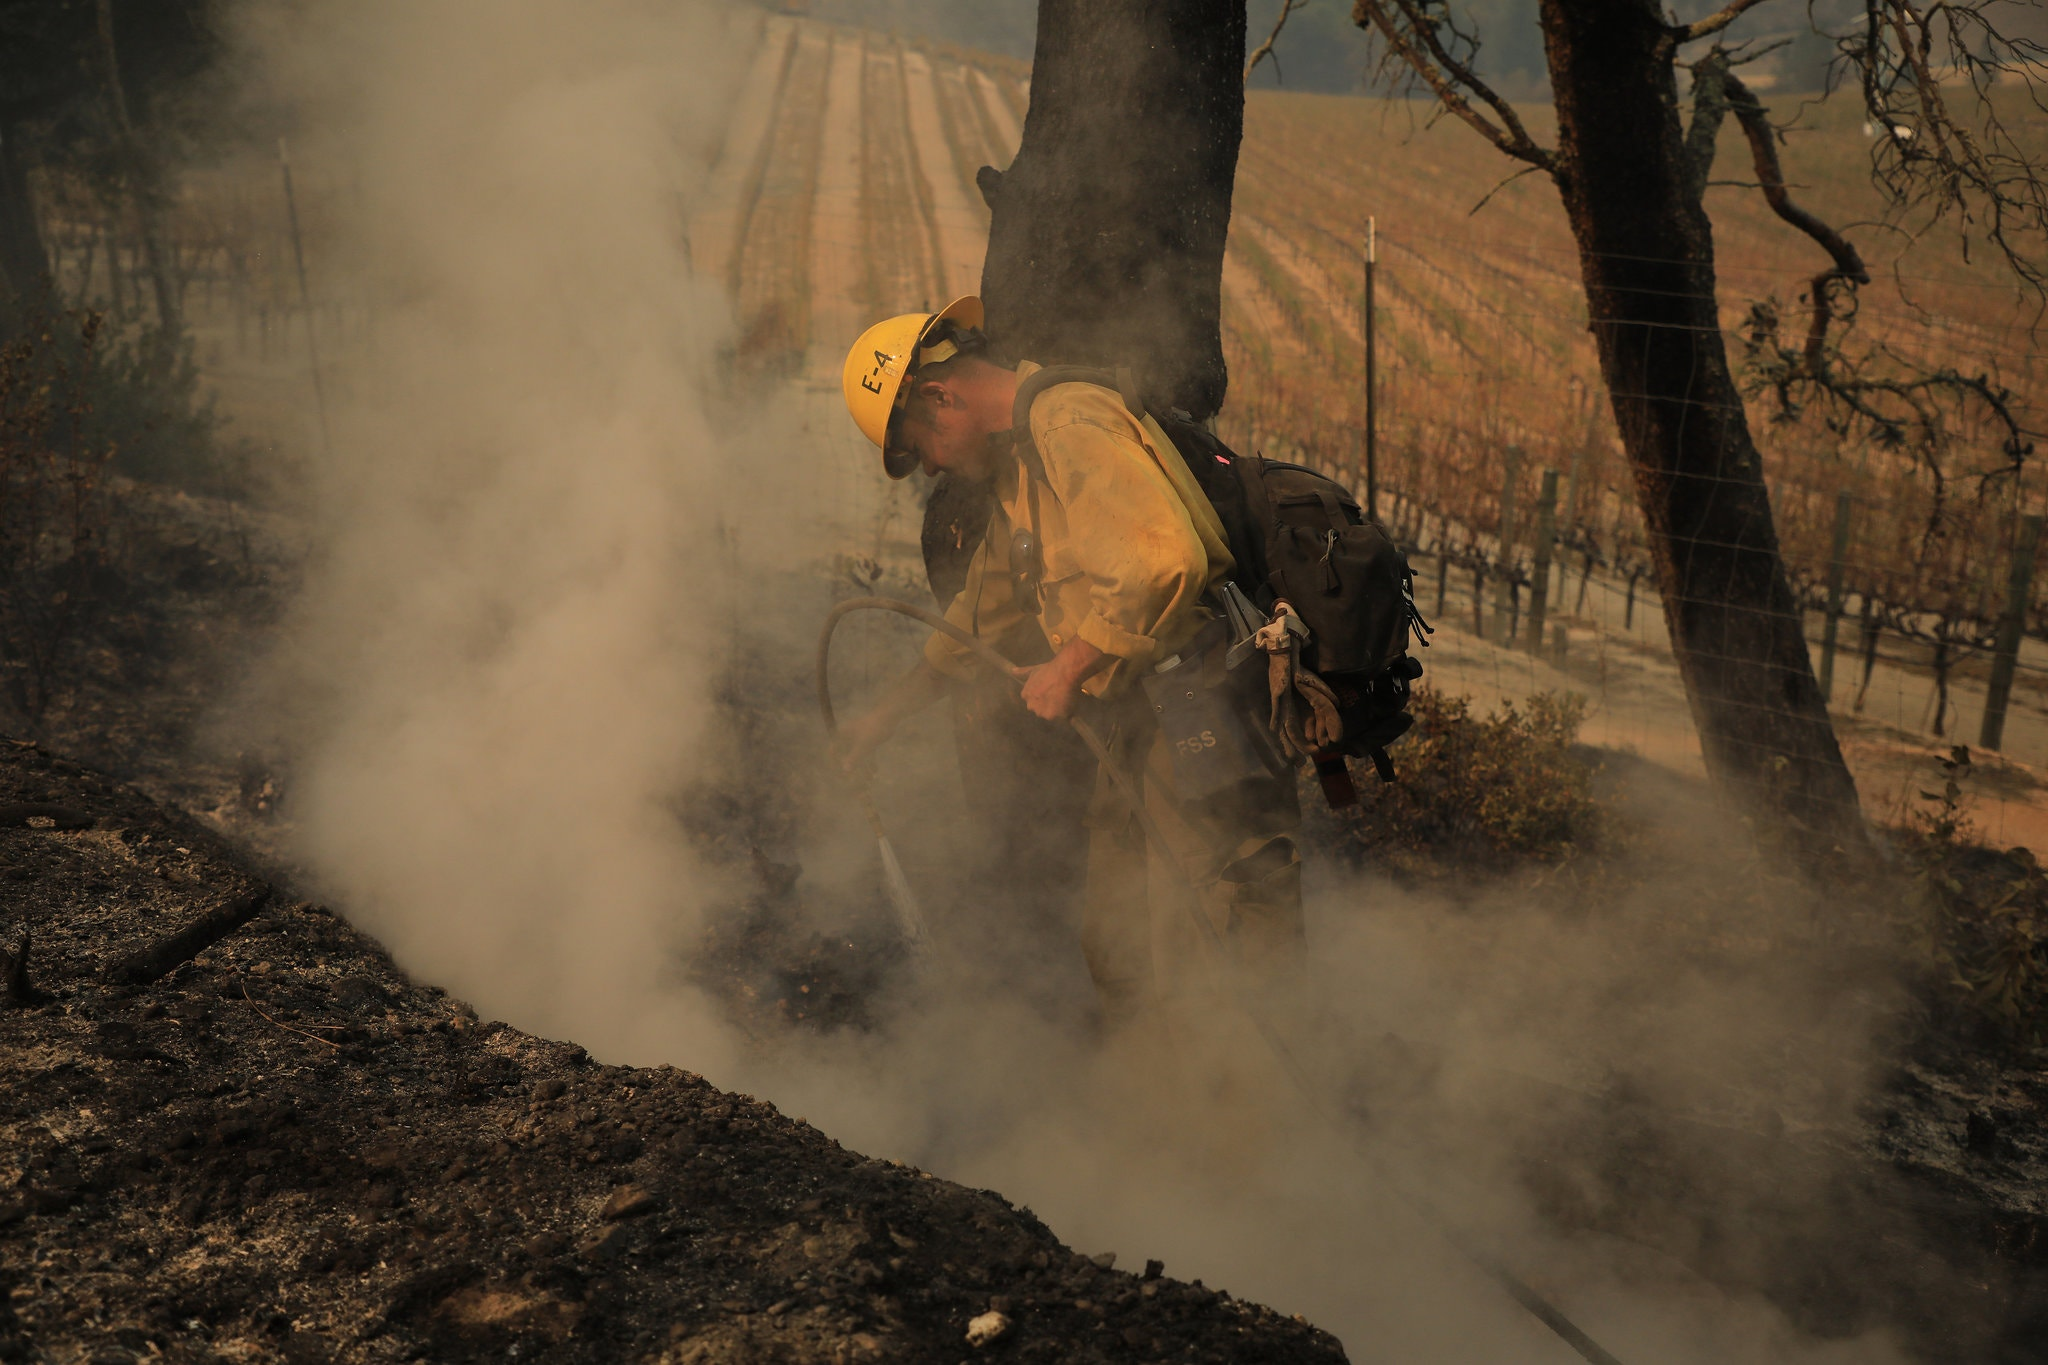 A photo of a fireman working in a forest fire